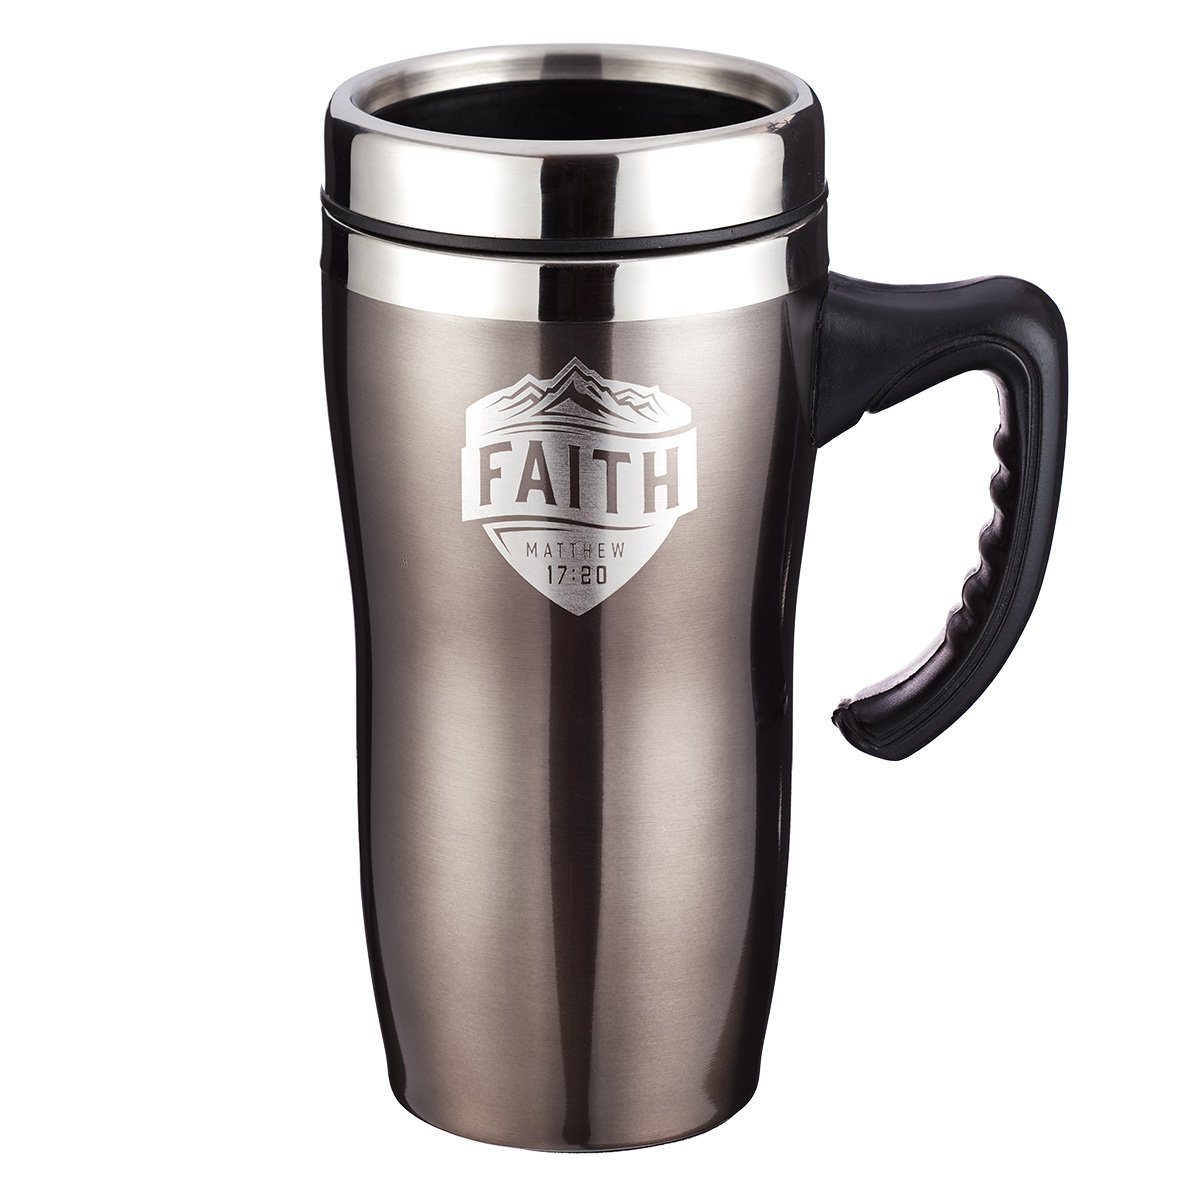 Stainless Steel Travel Mug: Faith